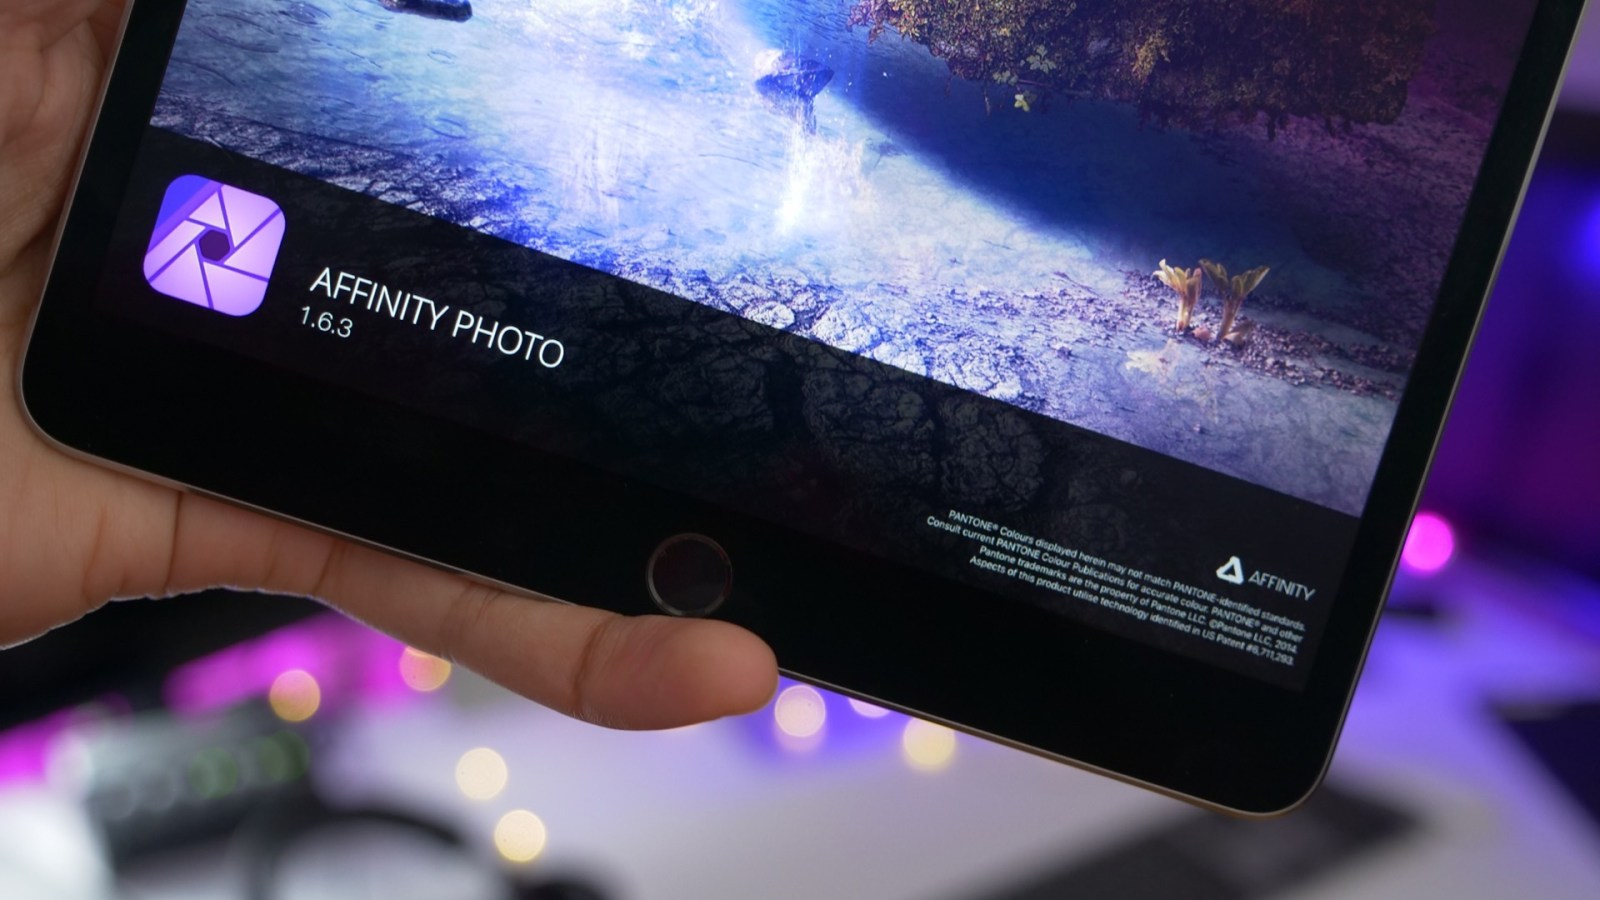 Affinity Photo gets big update headlined by resolution support for 10.5-inch iPad Pro, and portrait mode